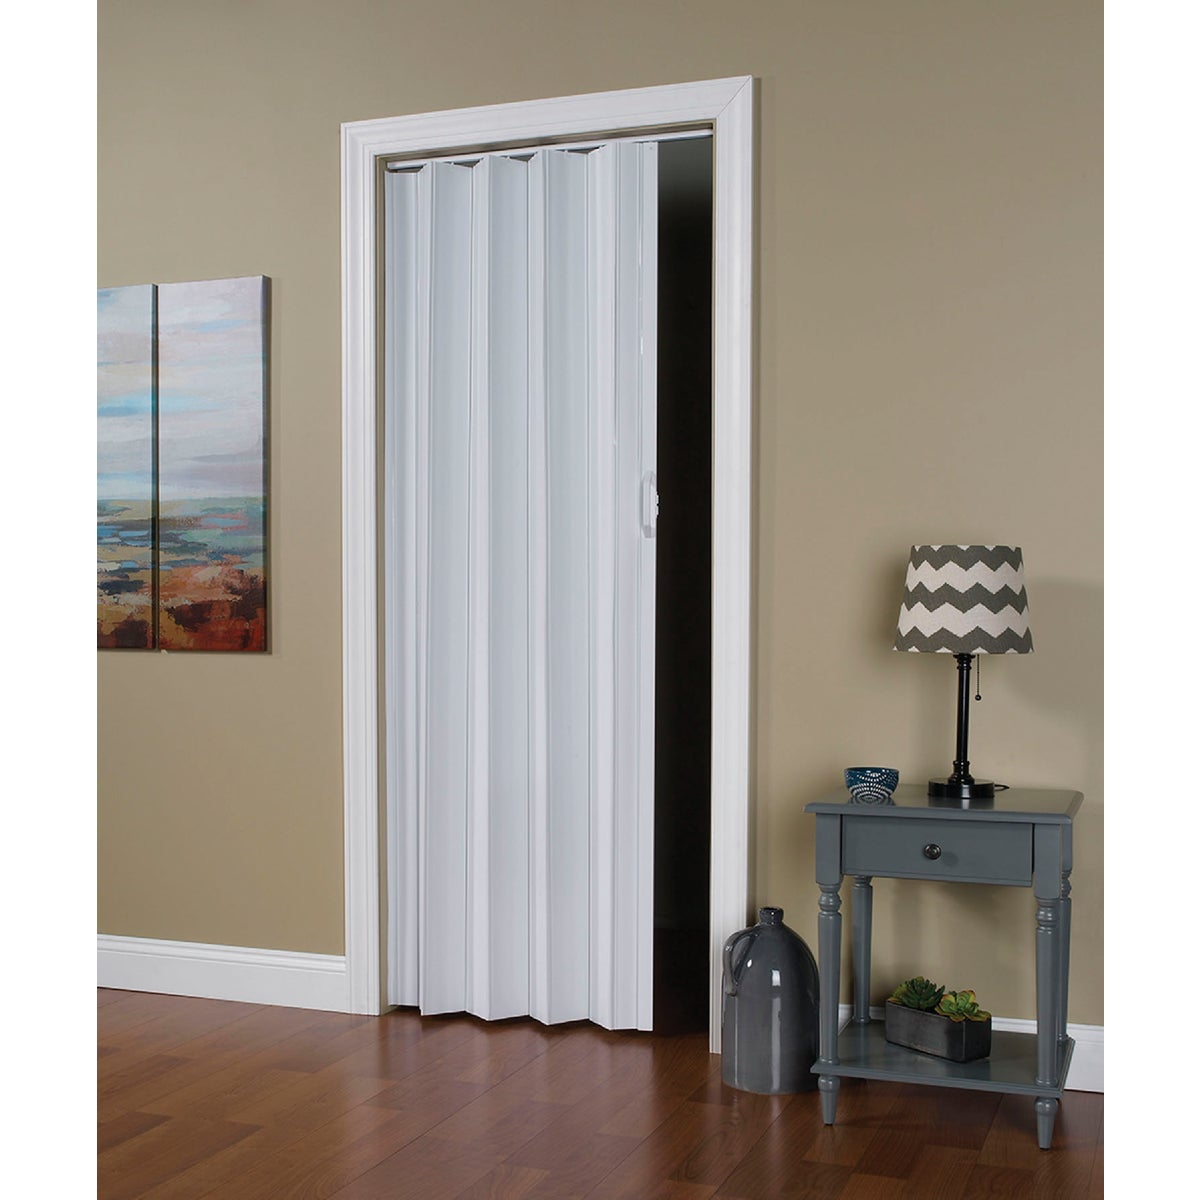 24-36X80 WHITE FOLD DOOR - VS3280HL by L T L Home Products